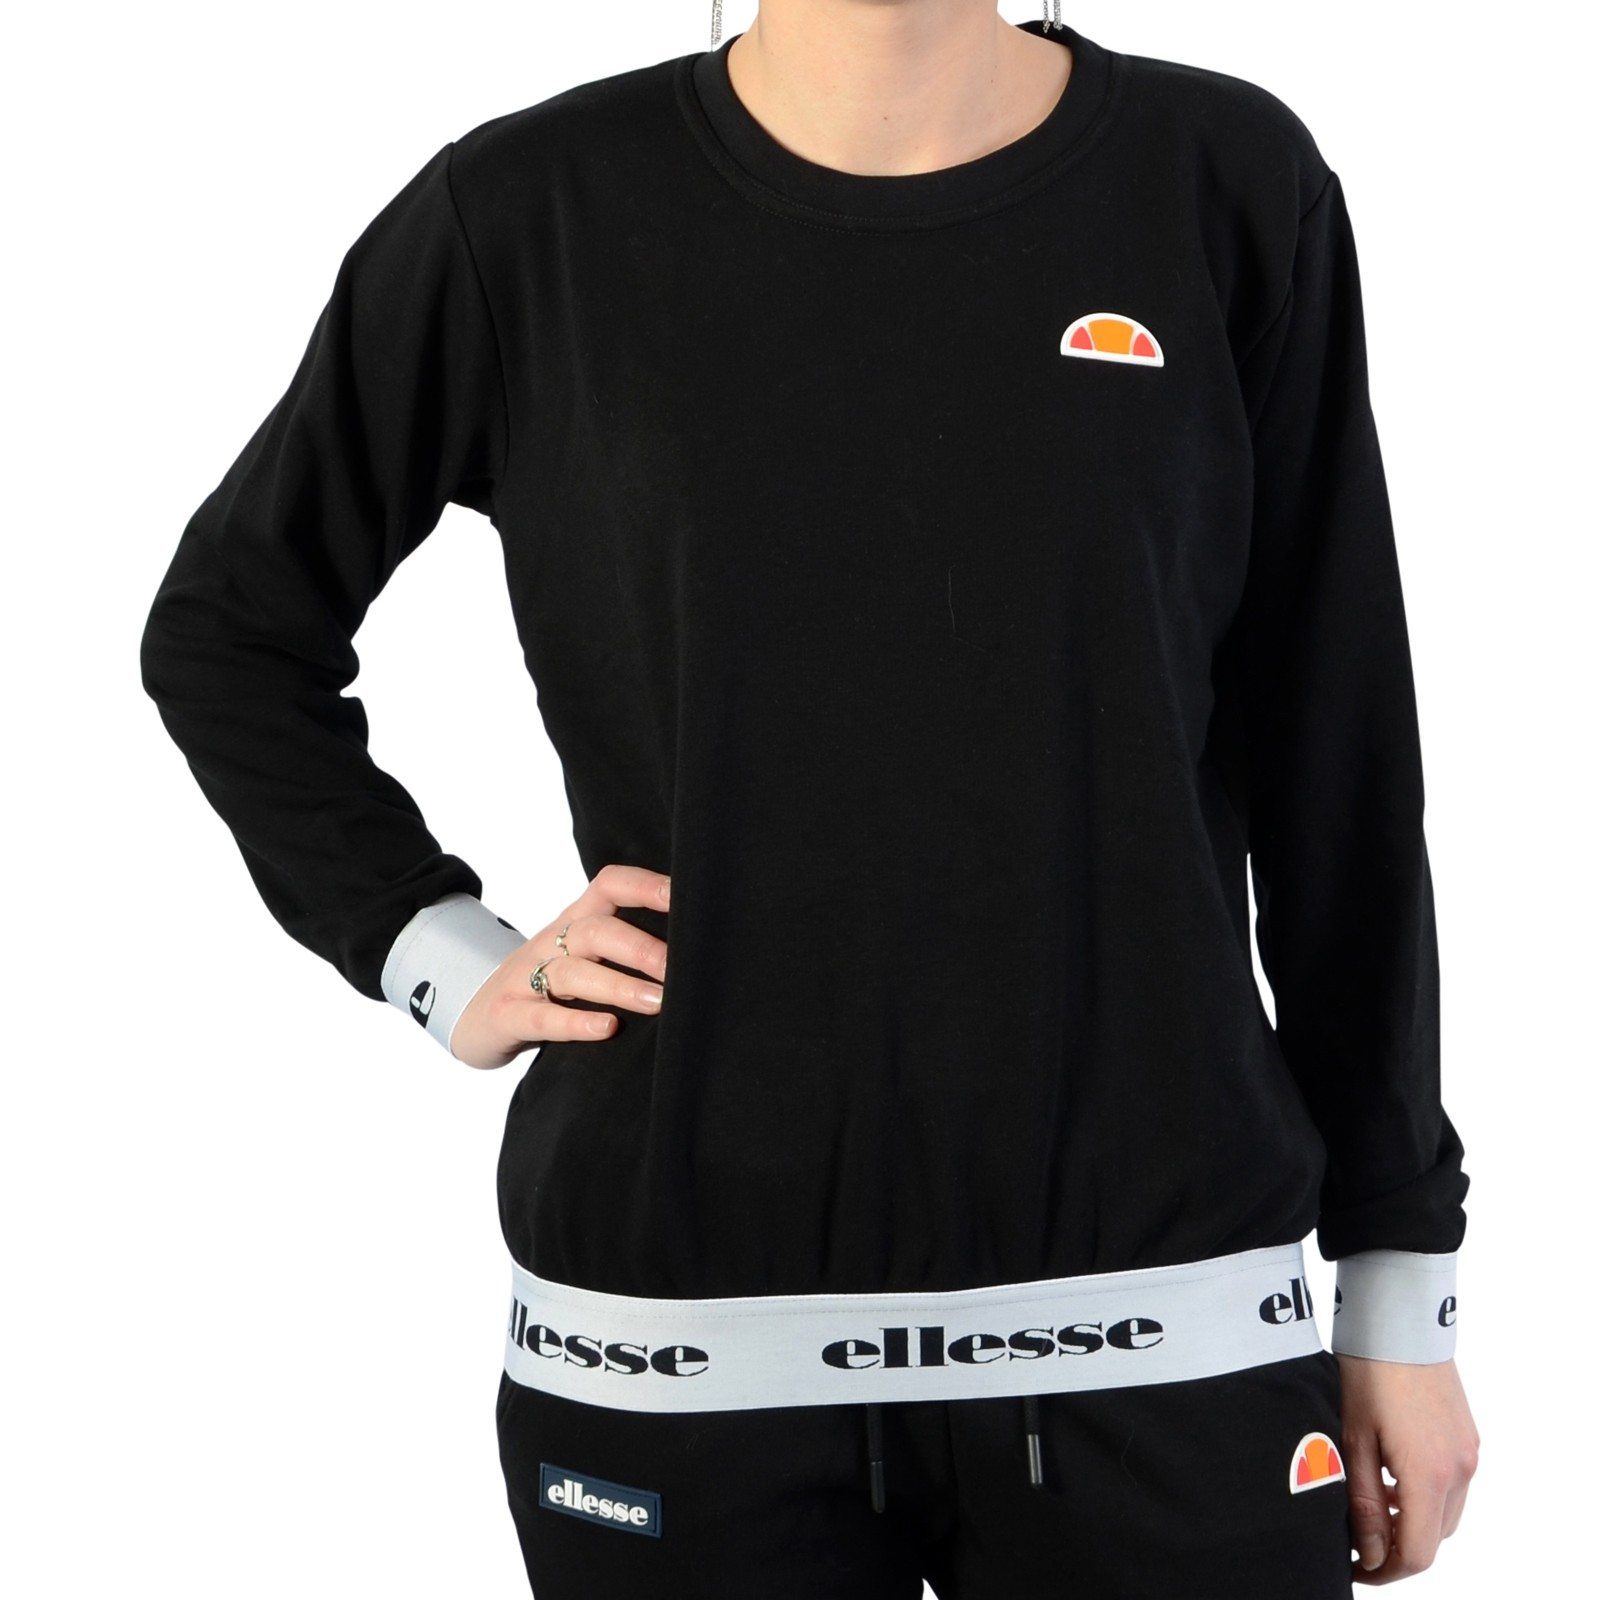 Sweat F Heritage Rond Eh Col 2 Galerie Femme Sws Ellesse Chic Y6gyI7bfv